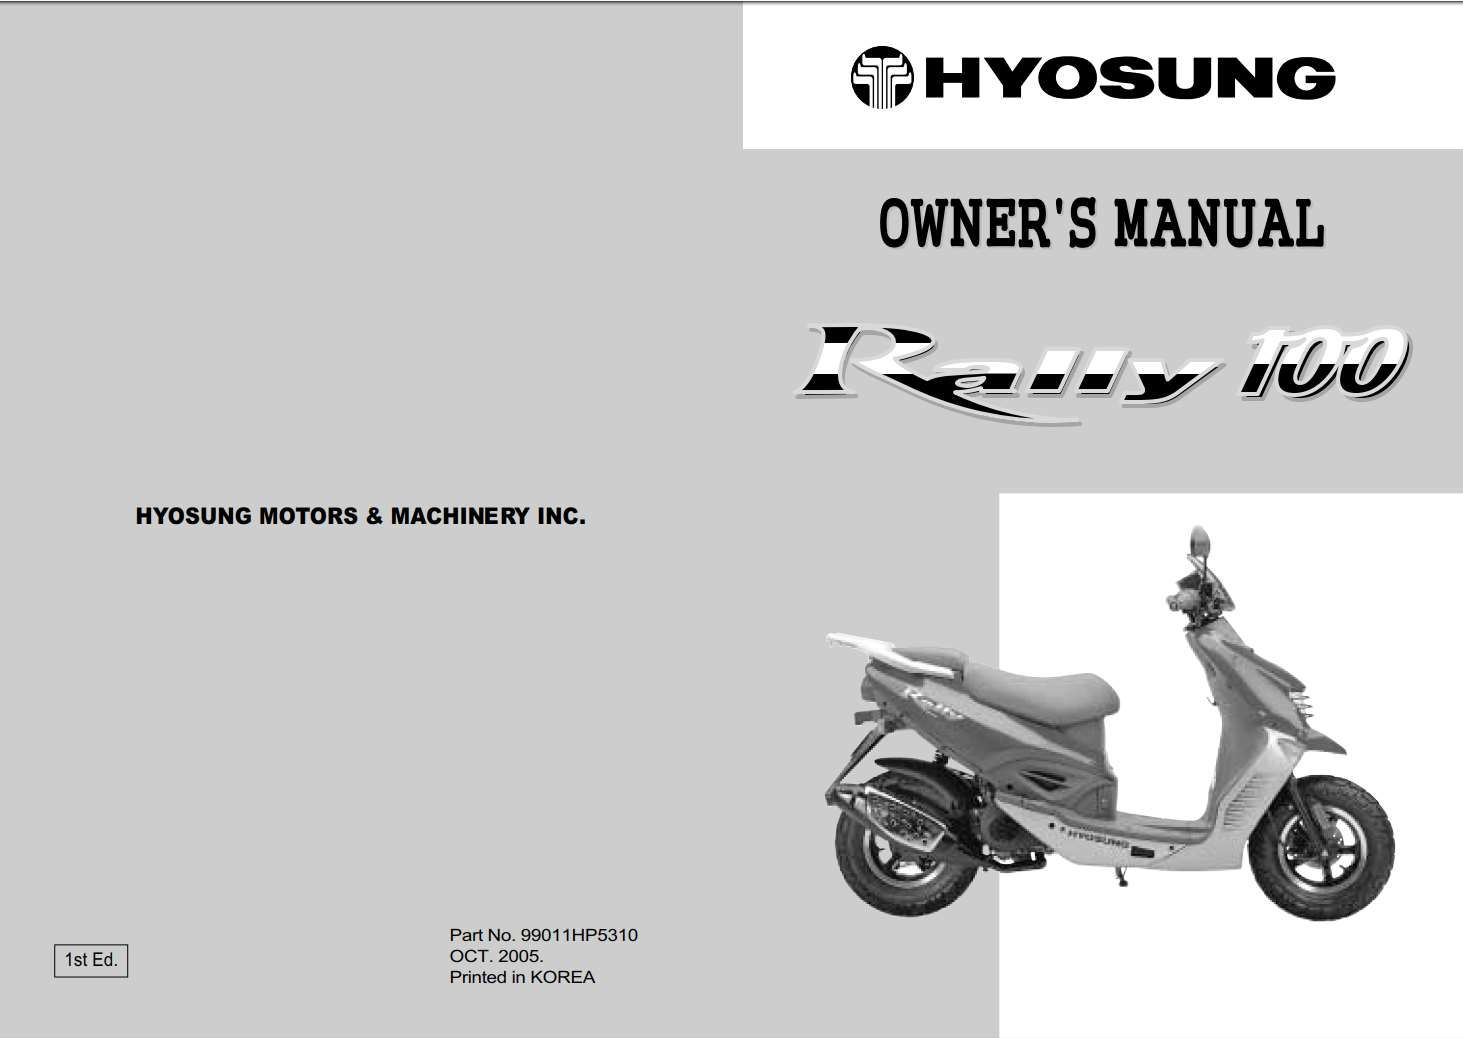 Hyosung Rally 100 2005 Owner S Manual Has Been Published On Procarmanuals Com Https Procarmanuals Com Hyosung Rally 100 2005 Owne Owners Manuals Rally Manual